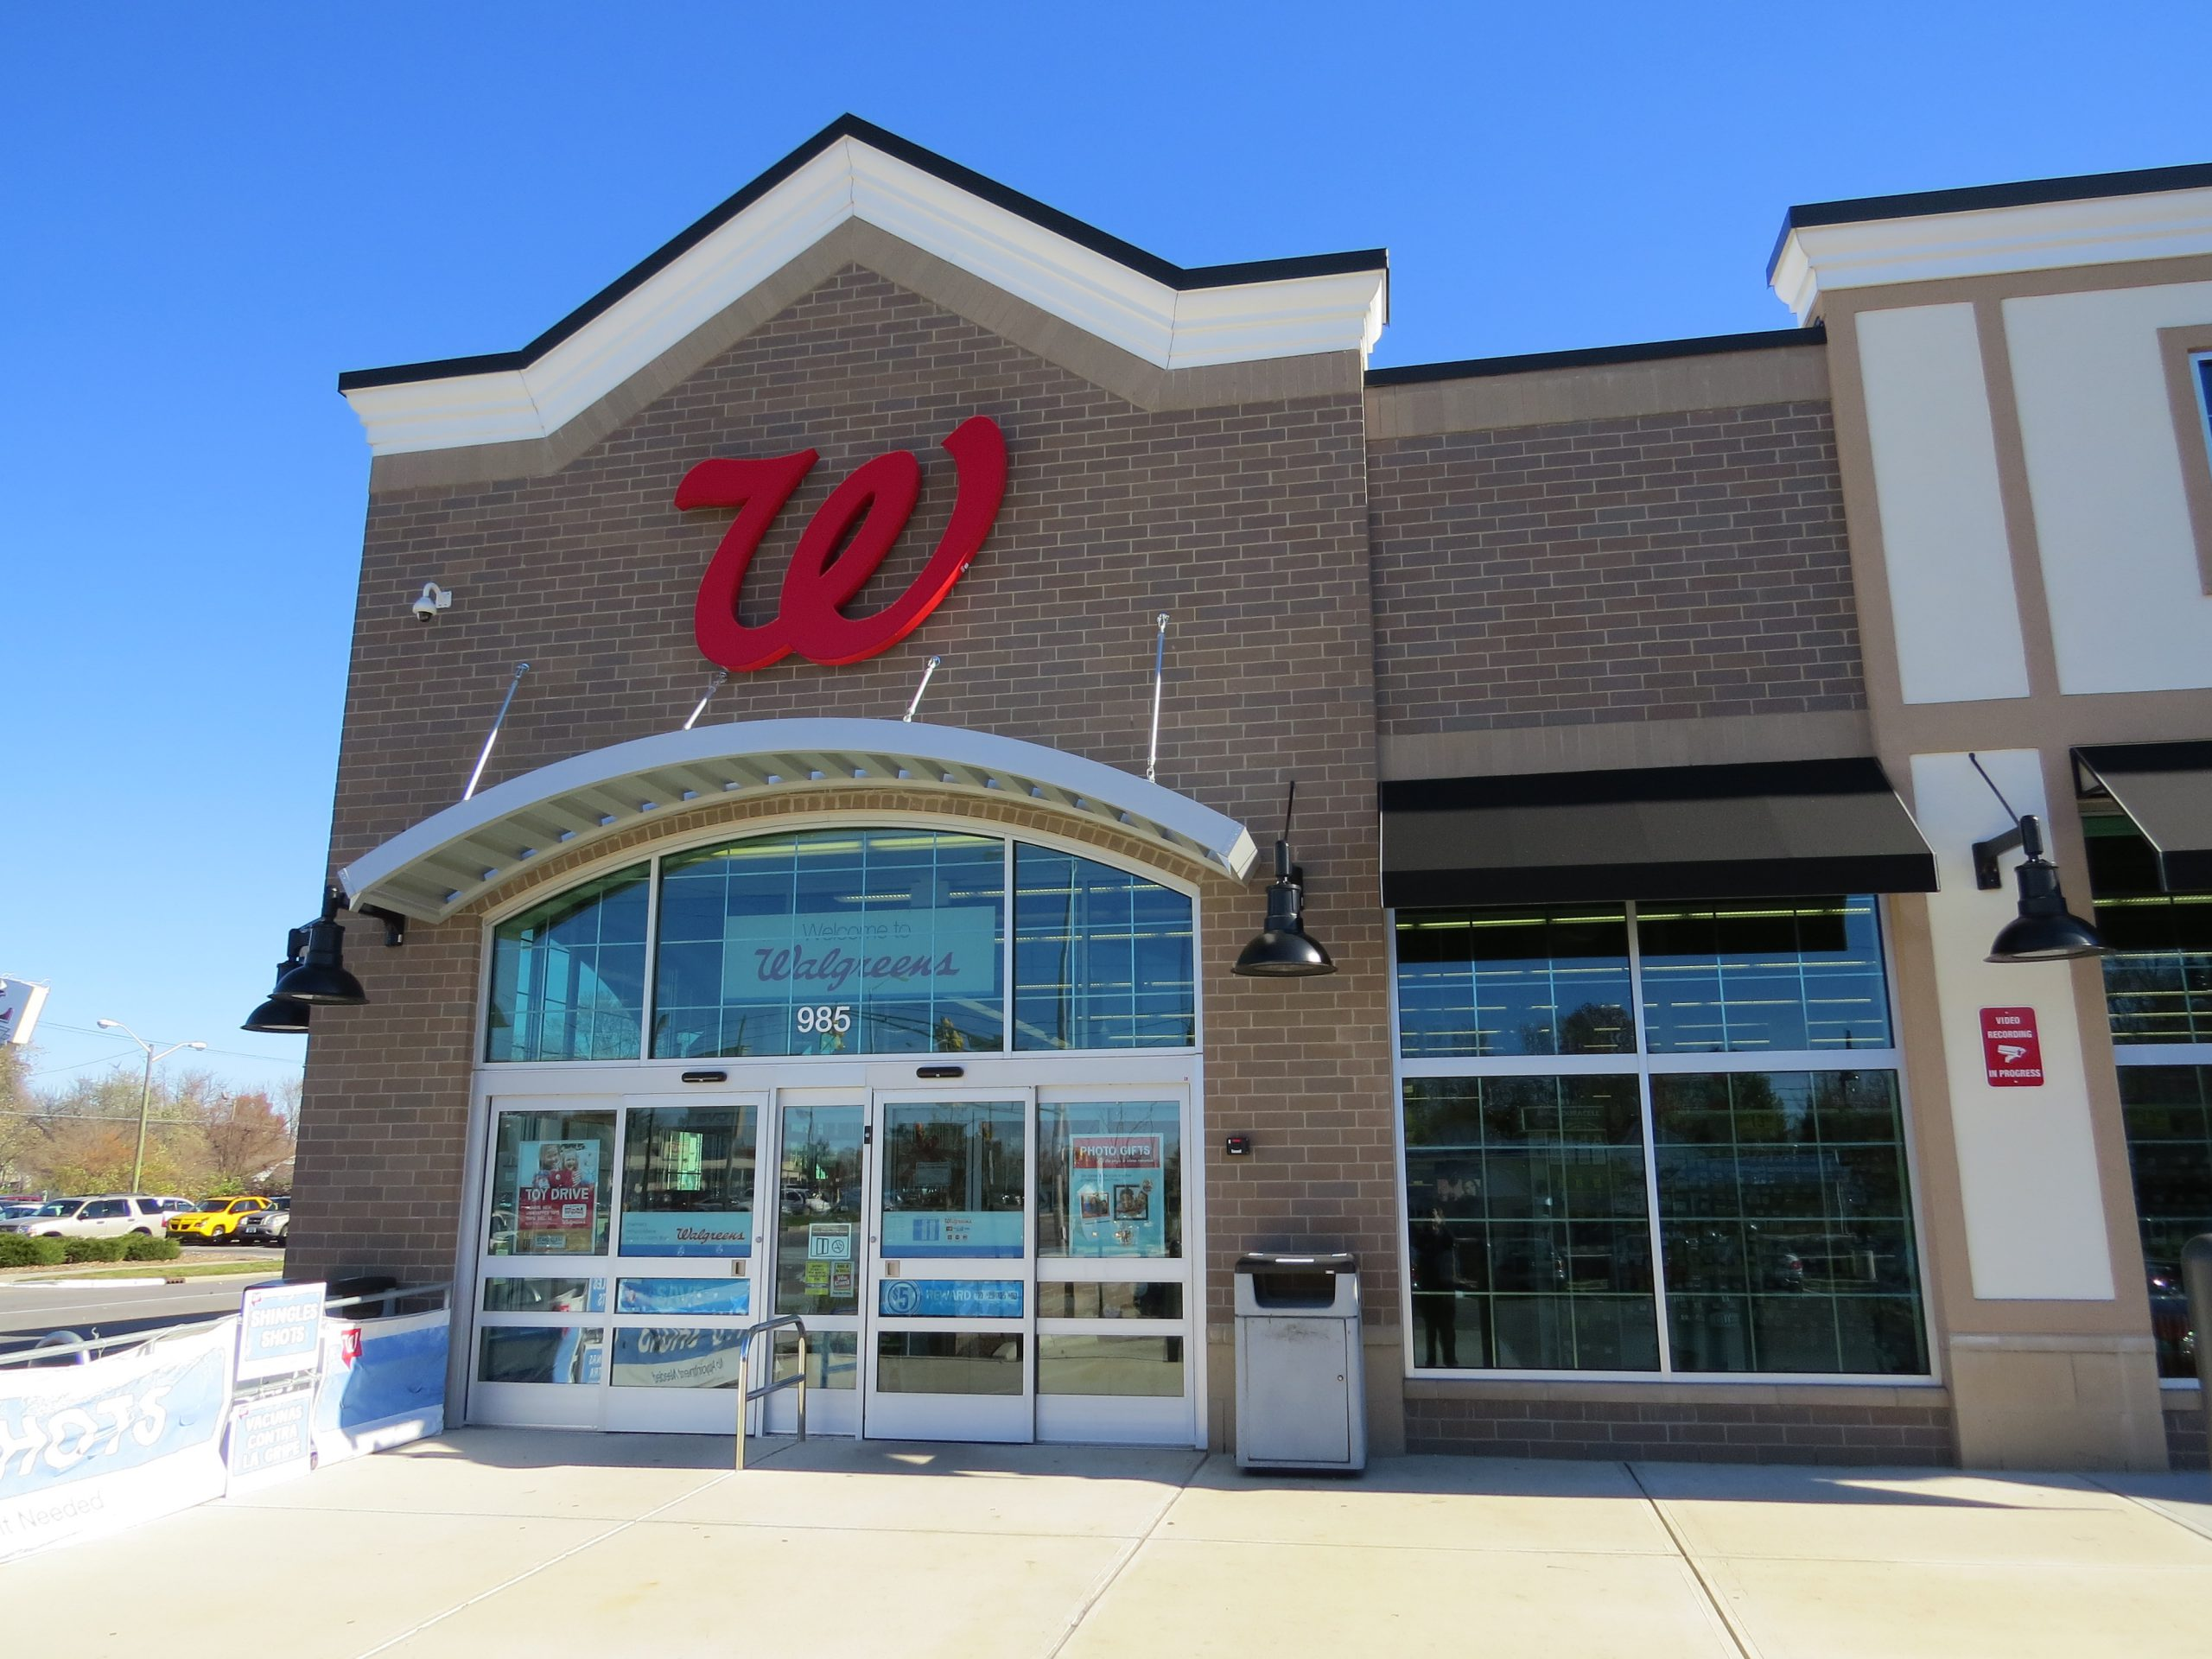 Aluminum-Architectural-Canopy-Awning-Walgreens